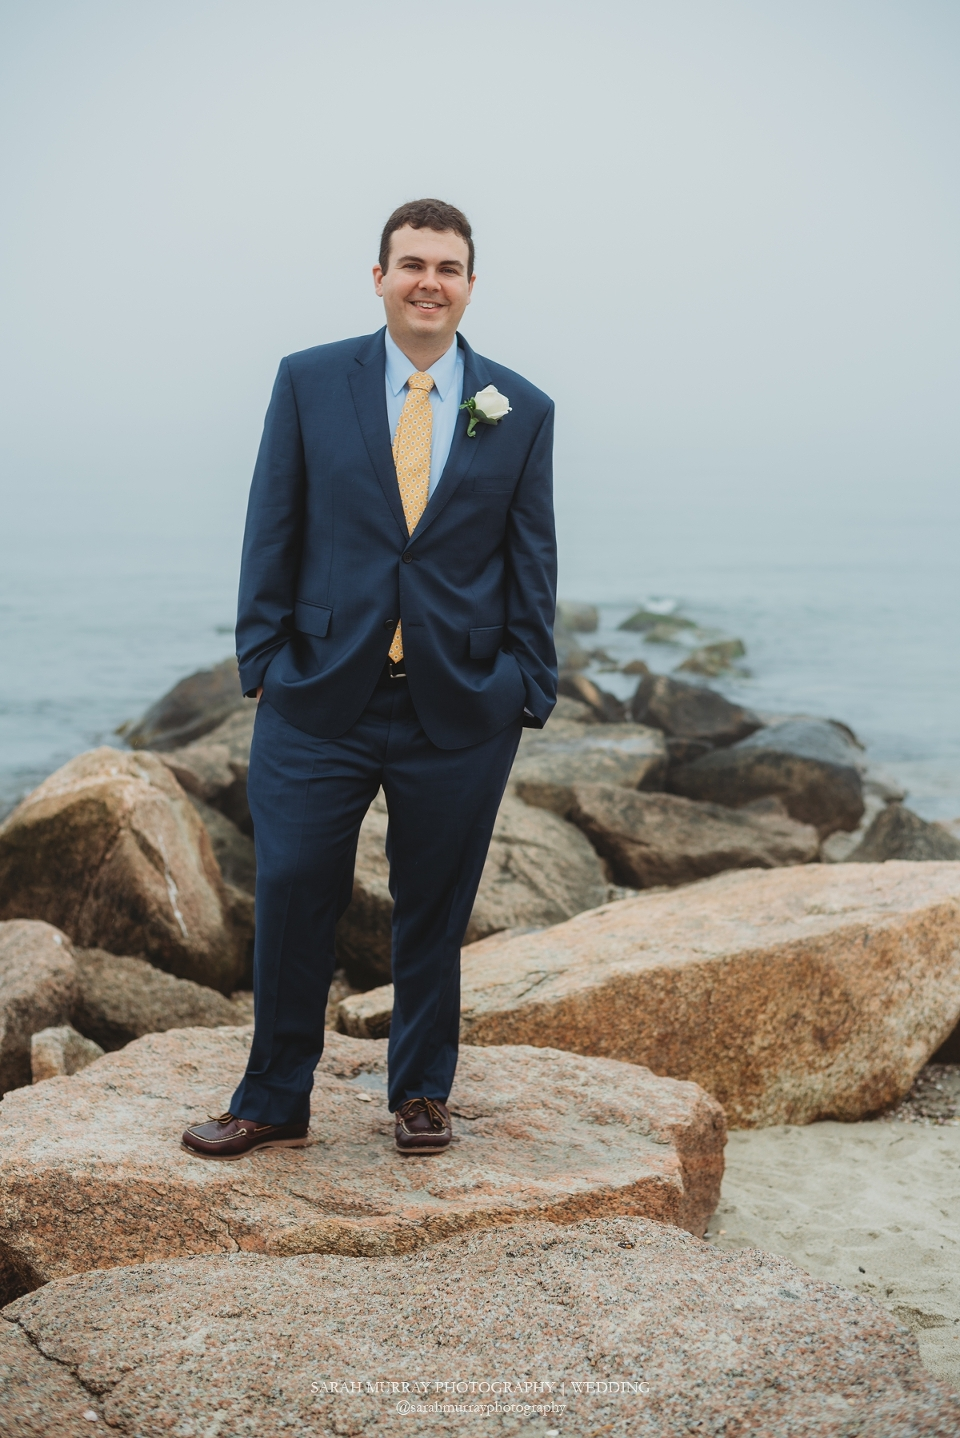 Menauhant Beach Elopement Wedding on Cape Cod in East Falmouth Massachusetts Sarah Murray Photography